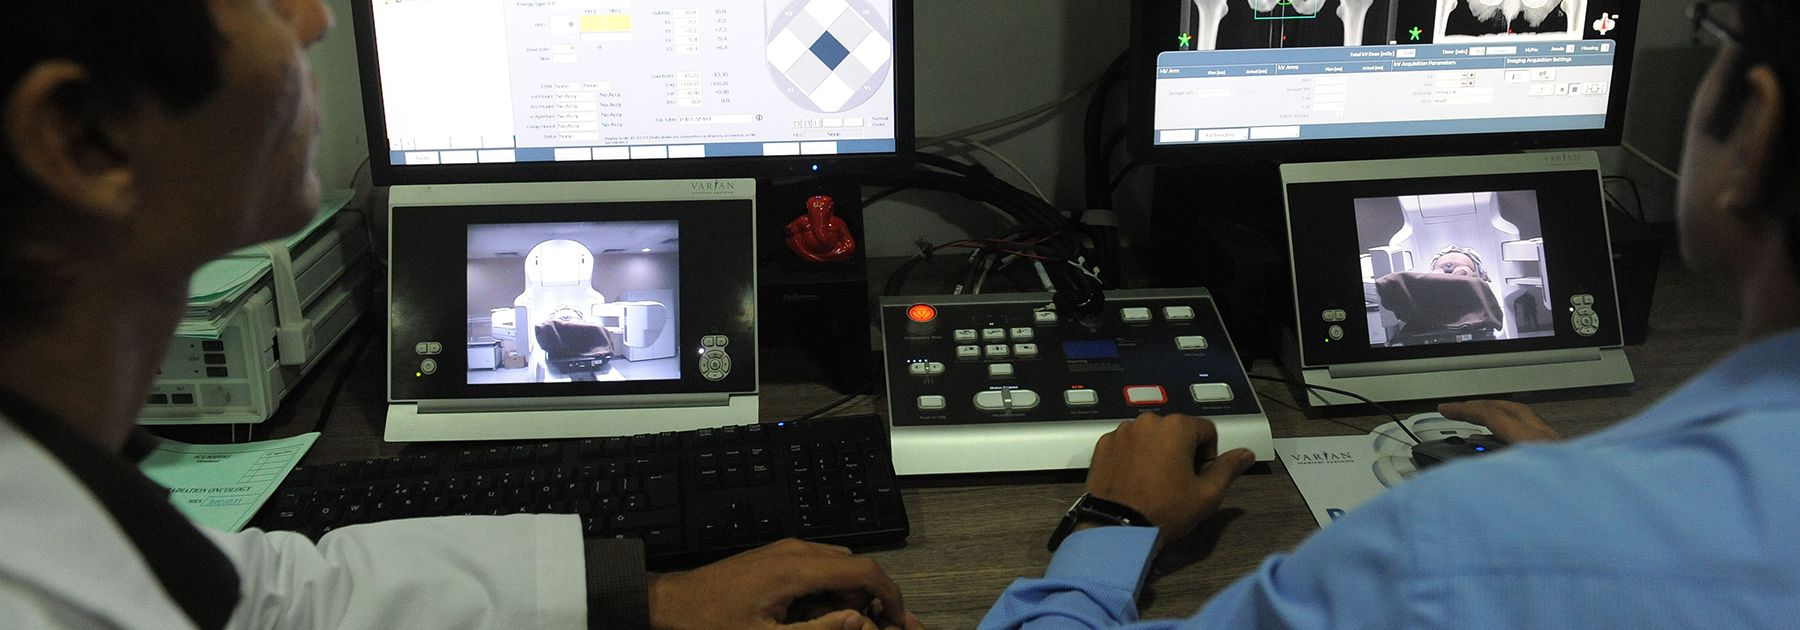 Radiation technicians monitor as a cancer patient lies on India's first True Beam Radiotherapy Technology Linear Accelerator at the Health Care Global (HCG) hospital in Ahmedabad. (SAM PANTHAKY/AFP/Getty Images)